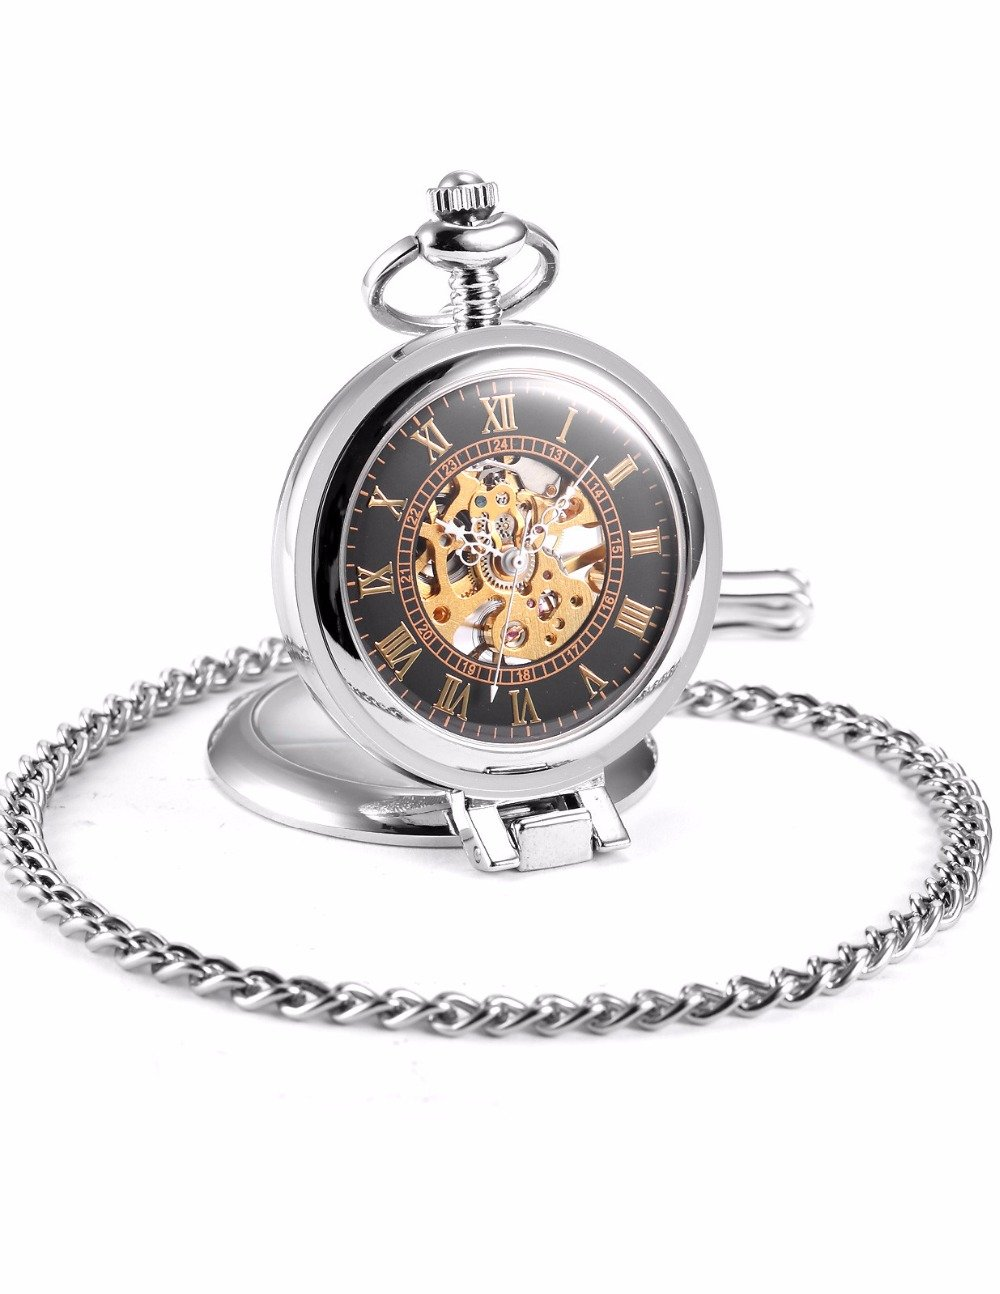 Open Face Pocket Watch with Self-stand Case Design - Pocket Watch Store